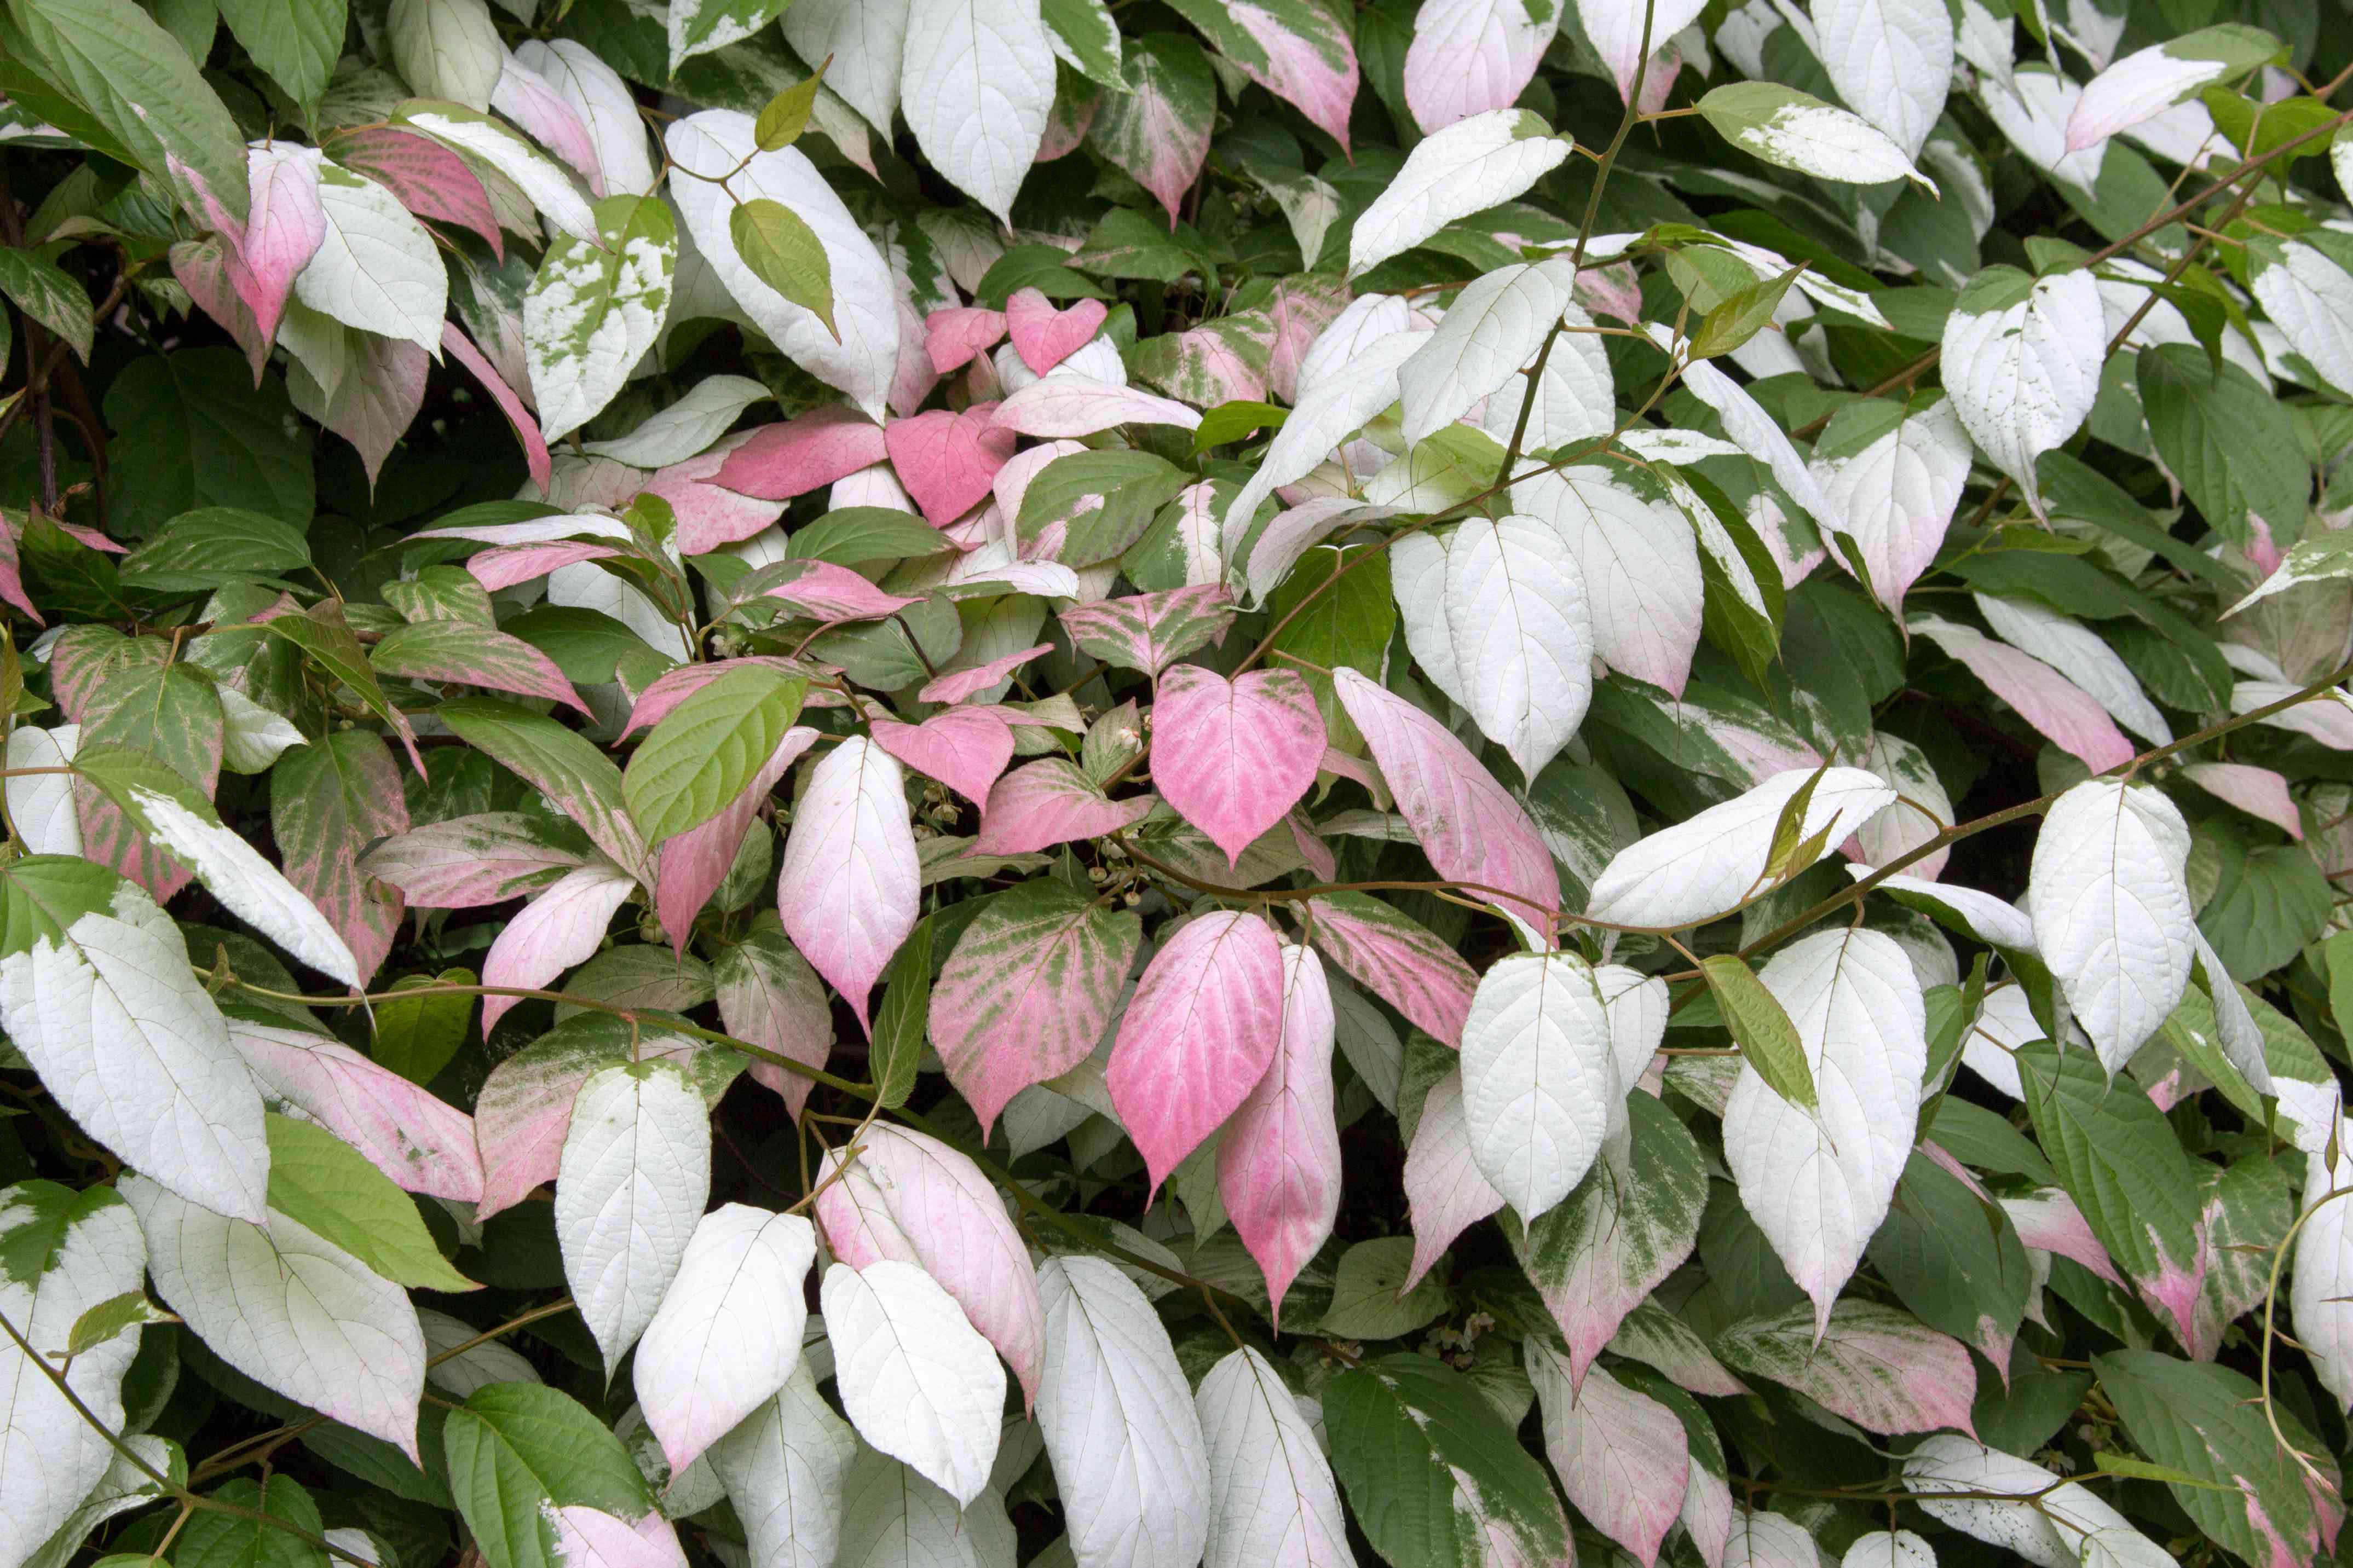 Actinidia colomicta is a beautiful plant with variegated pink and green leaves.